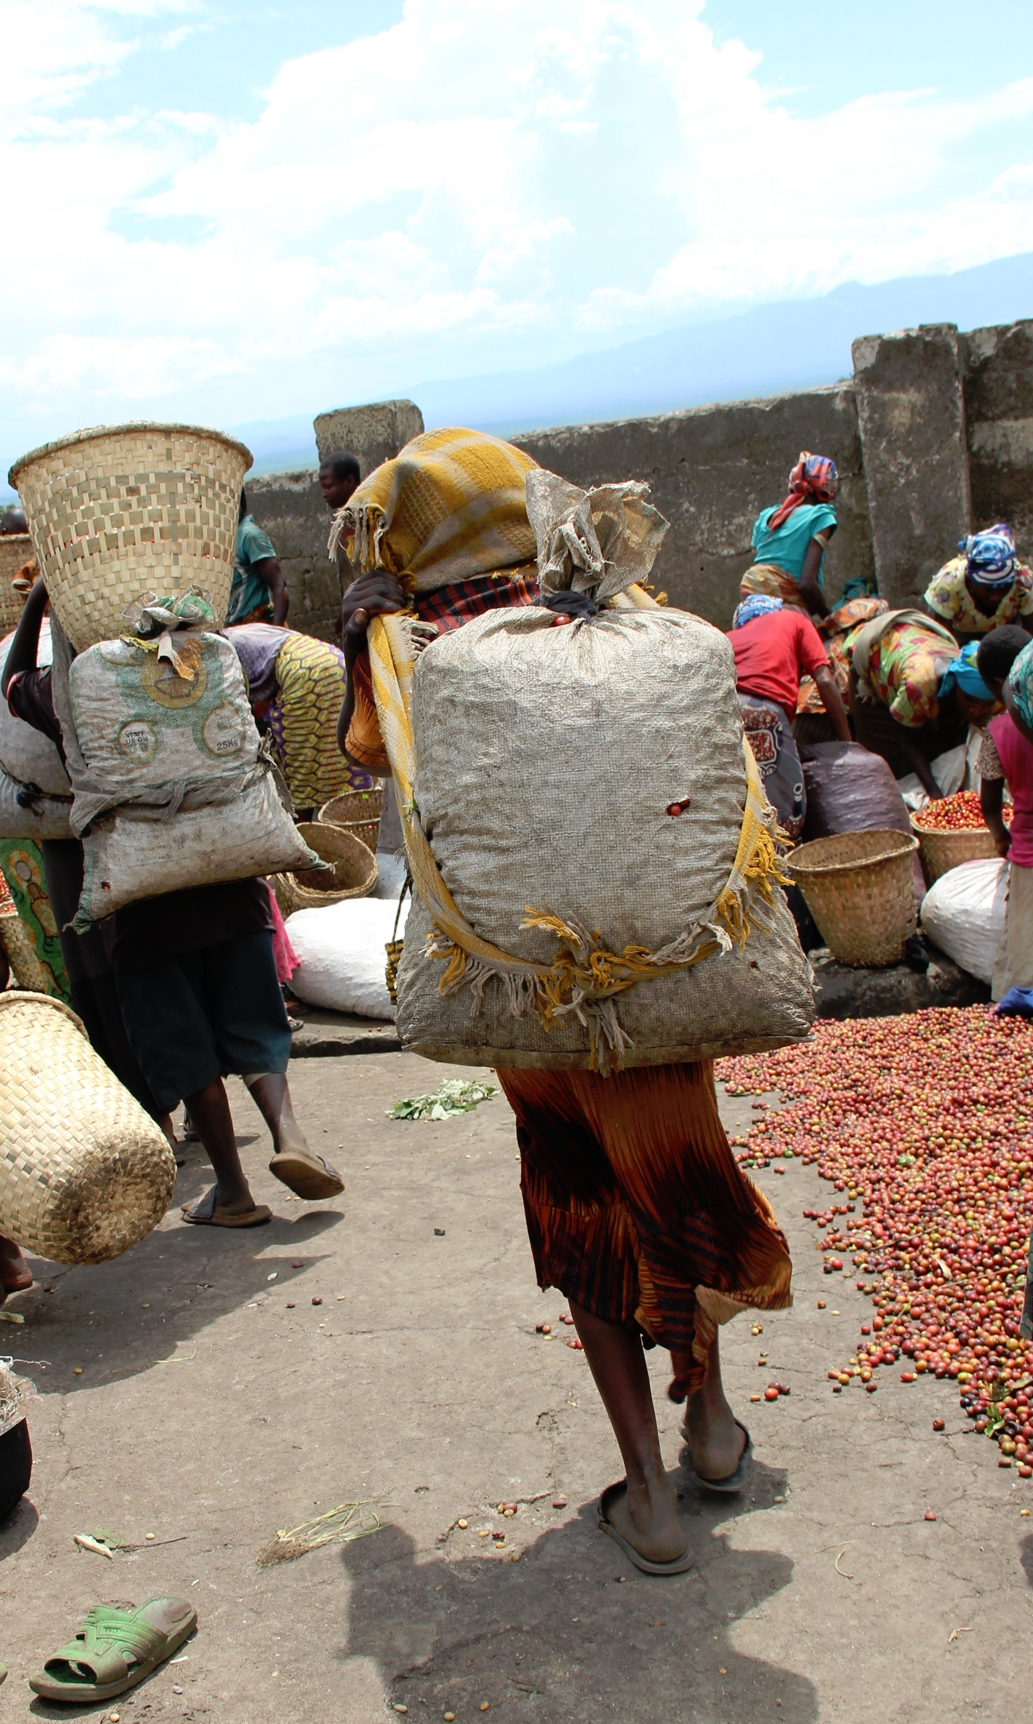 Coffee cherries are brought to the washing stations by coffee producers, predominately women who carry large heavy sacks on their backs, often for considerable distances.